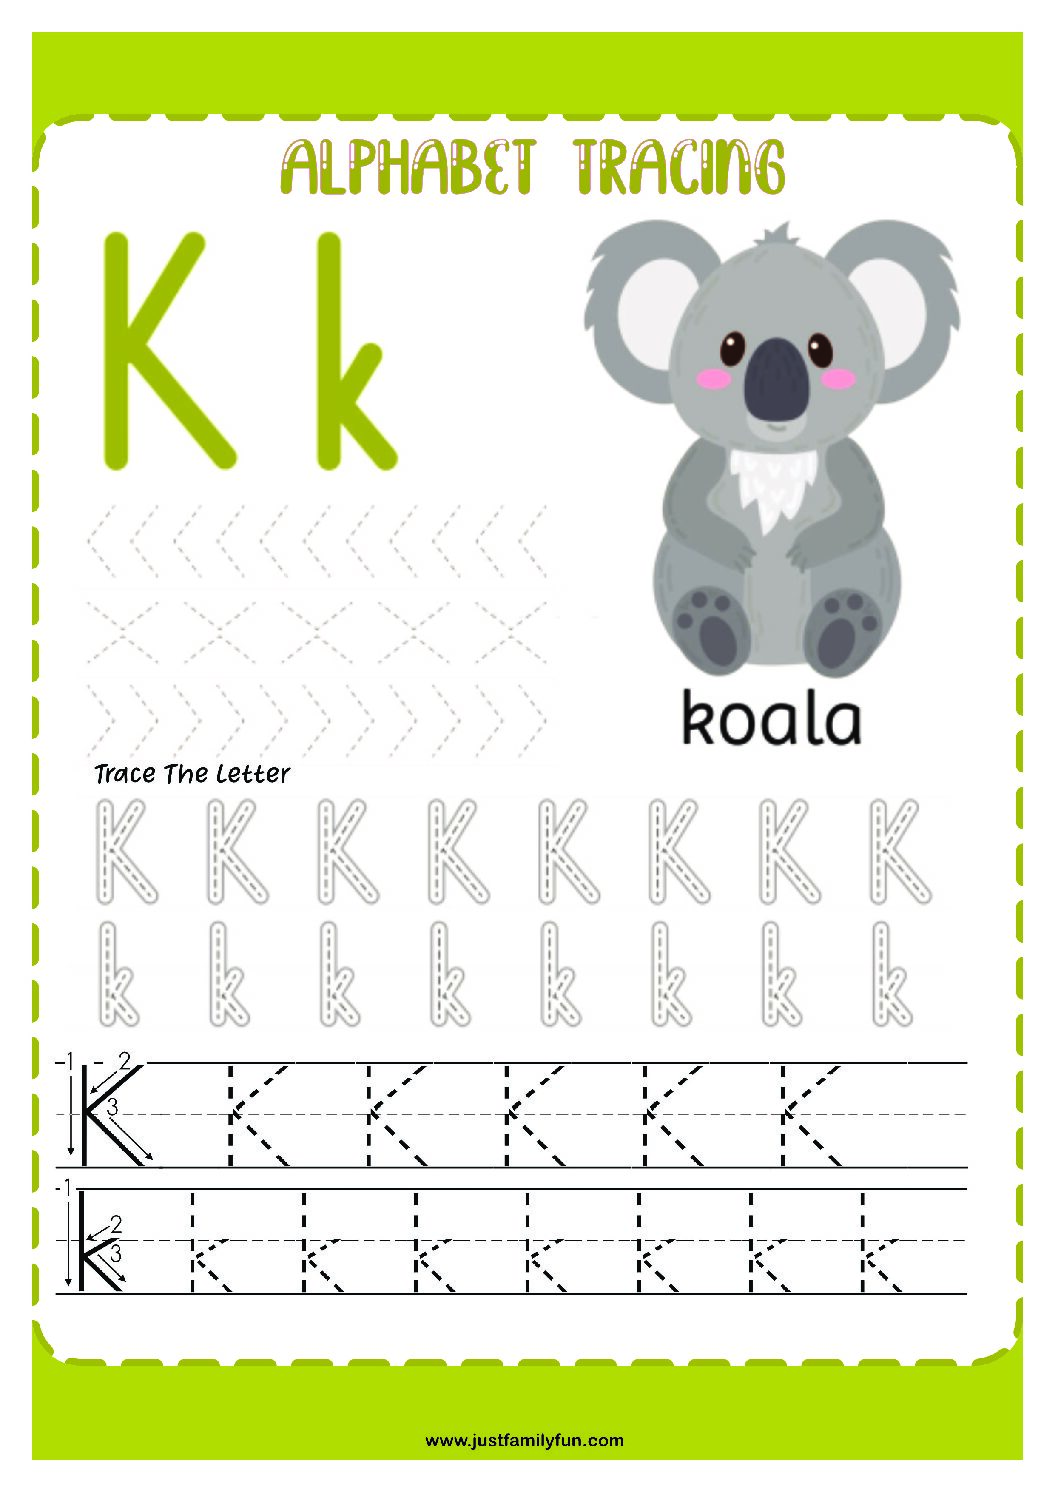 Alphabets_11-pdf Free Printable Trace The Alphabet Worksheets for Kids.